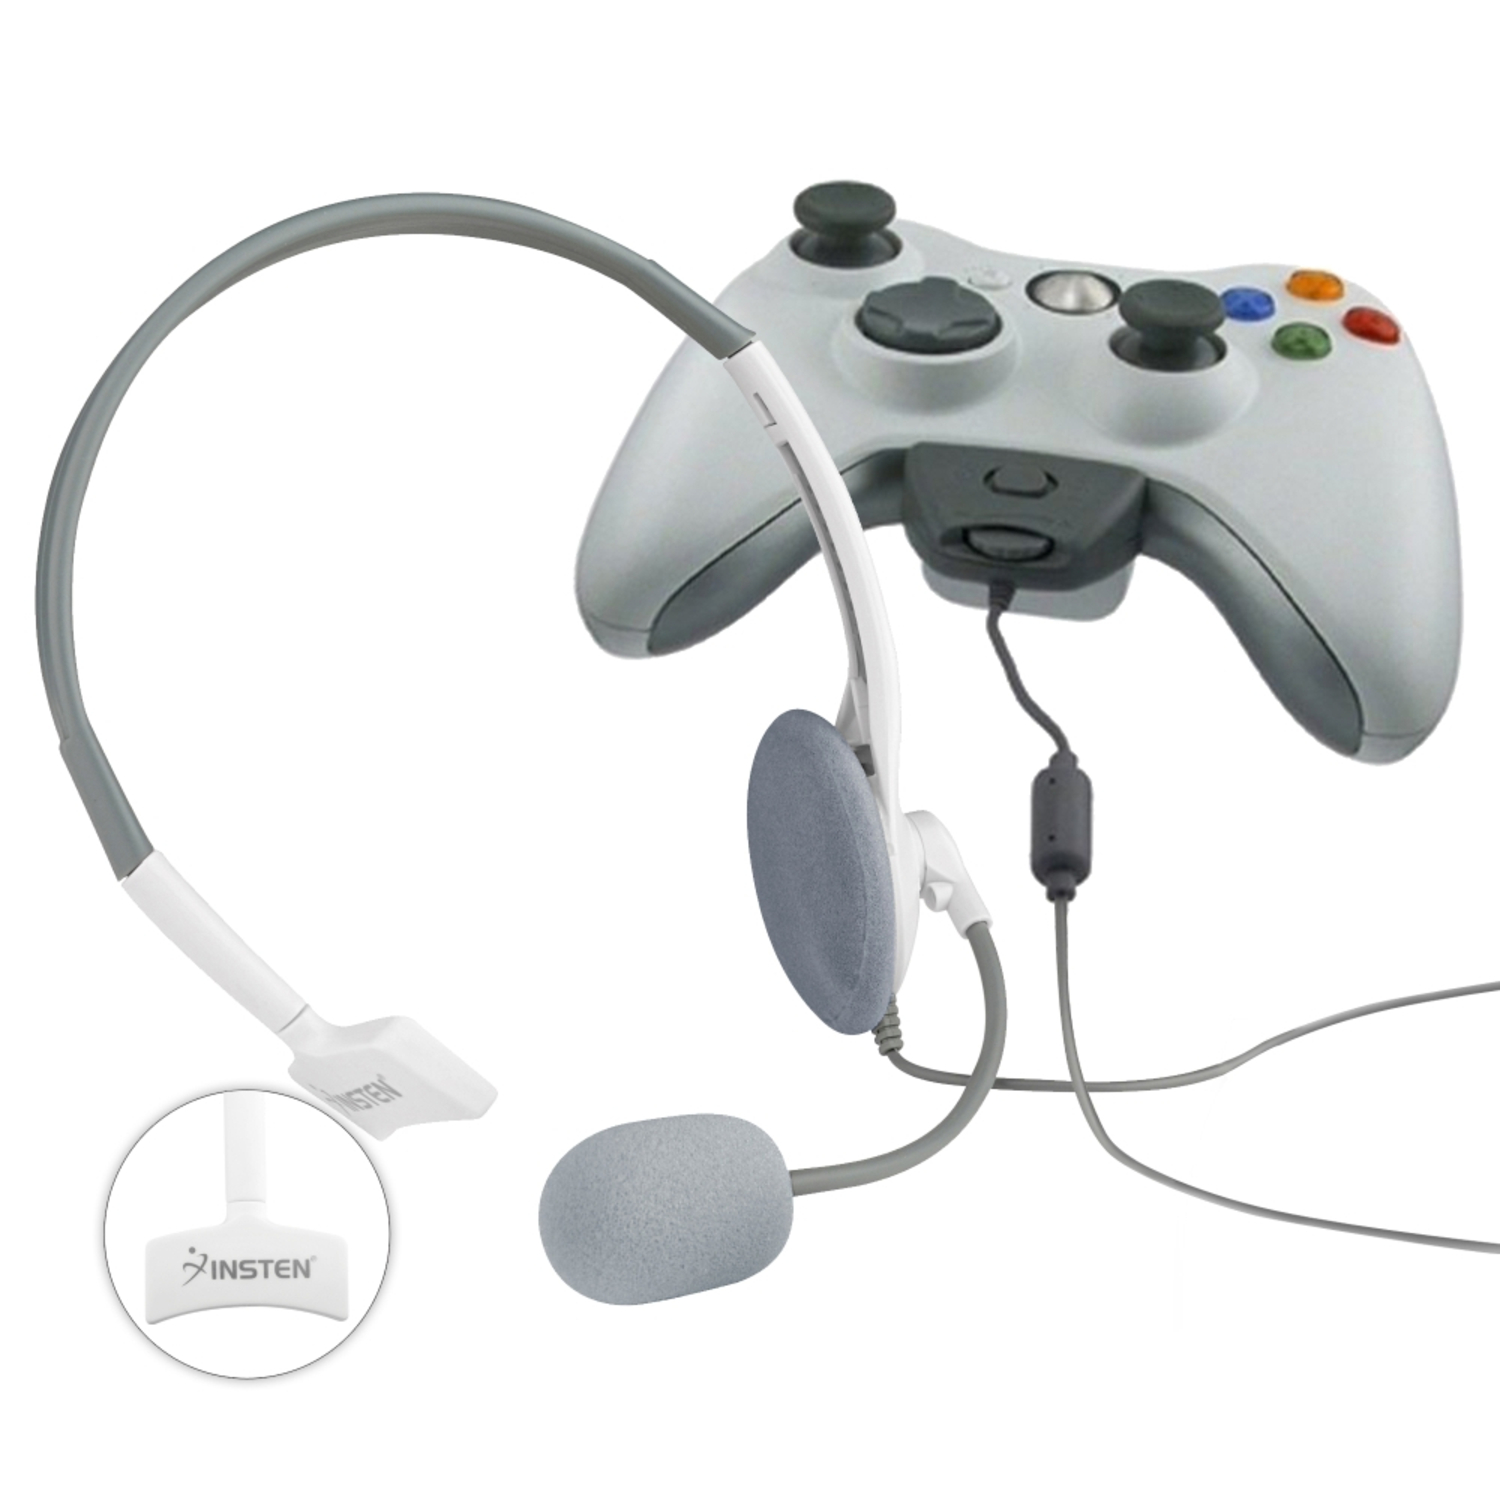 Insten NEW LIVE CHAT GAMING WIRED HEADSET HEADPHONE WITH MICROPHONE W/MIC FOR XBOX 360